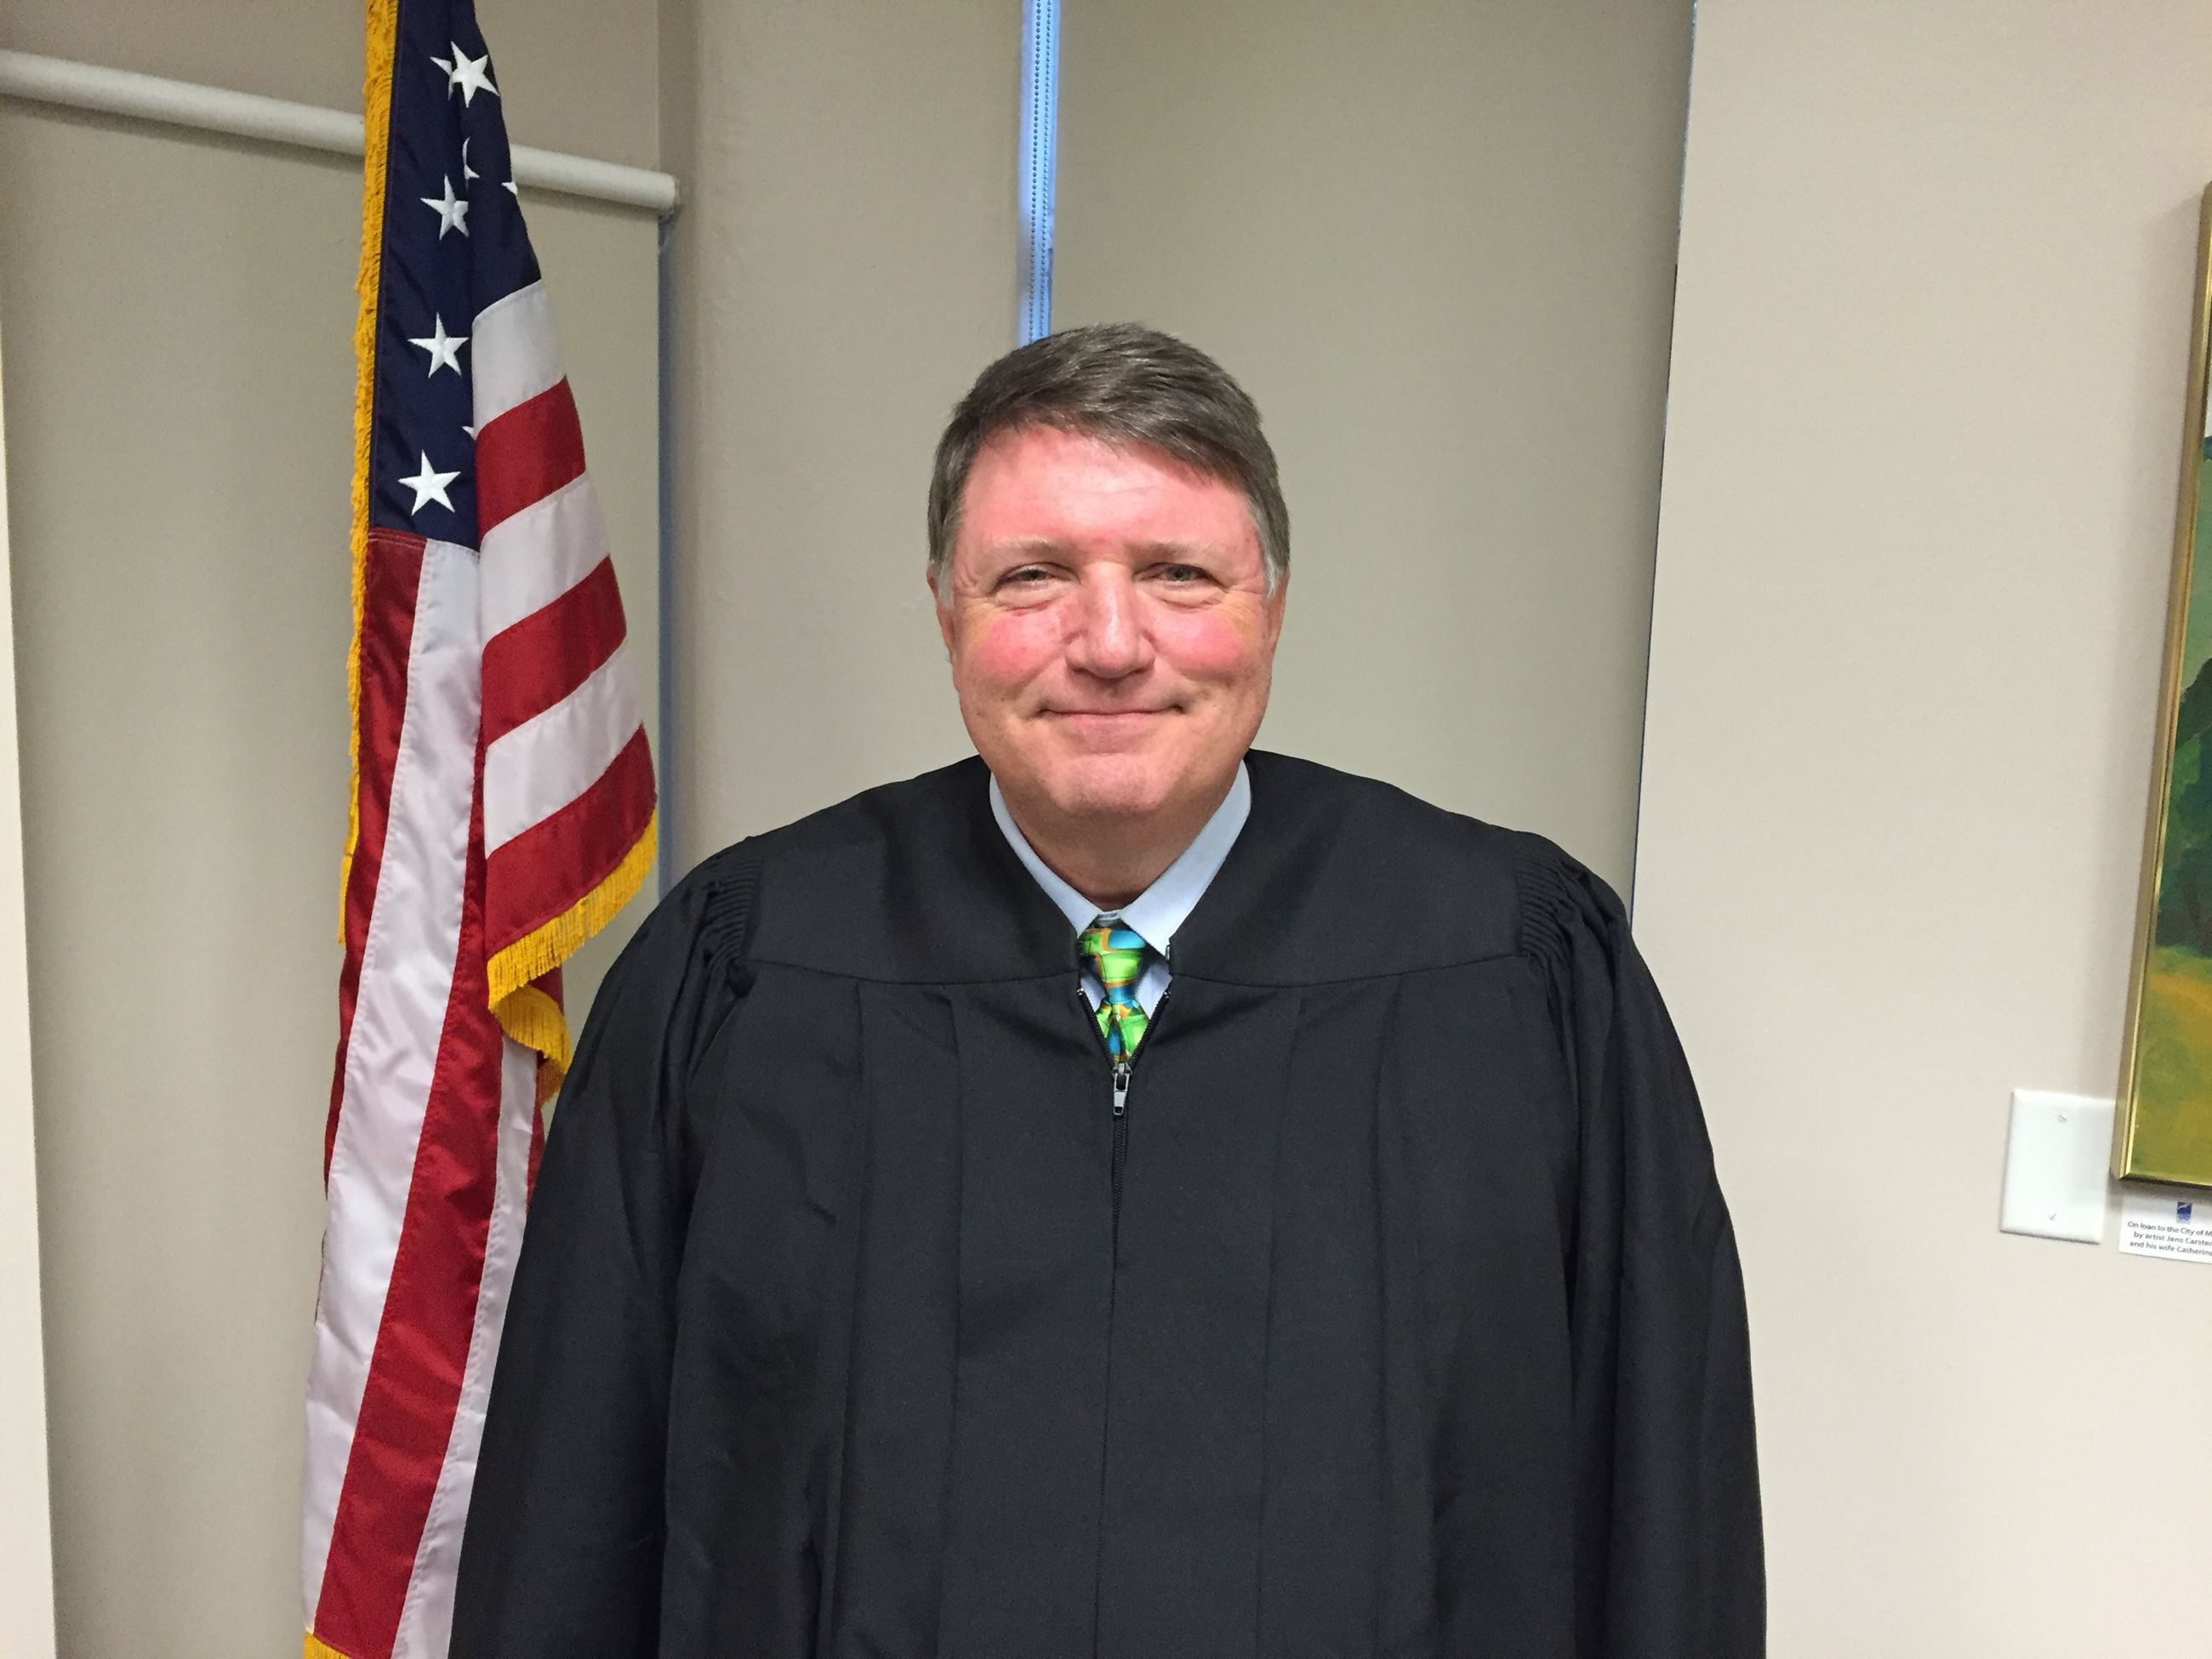 Judge Finley